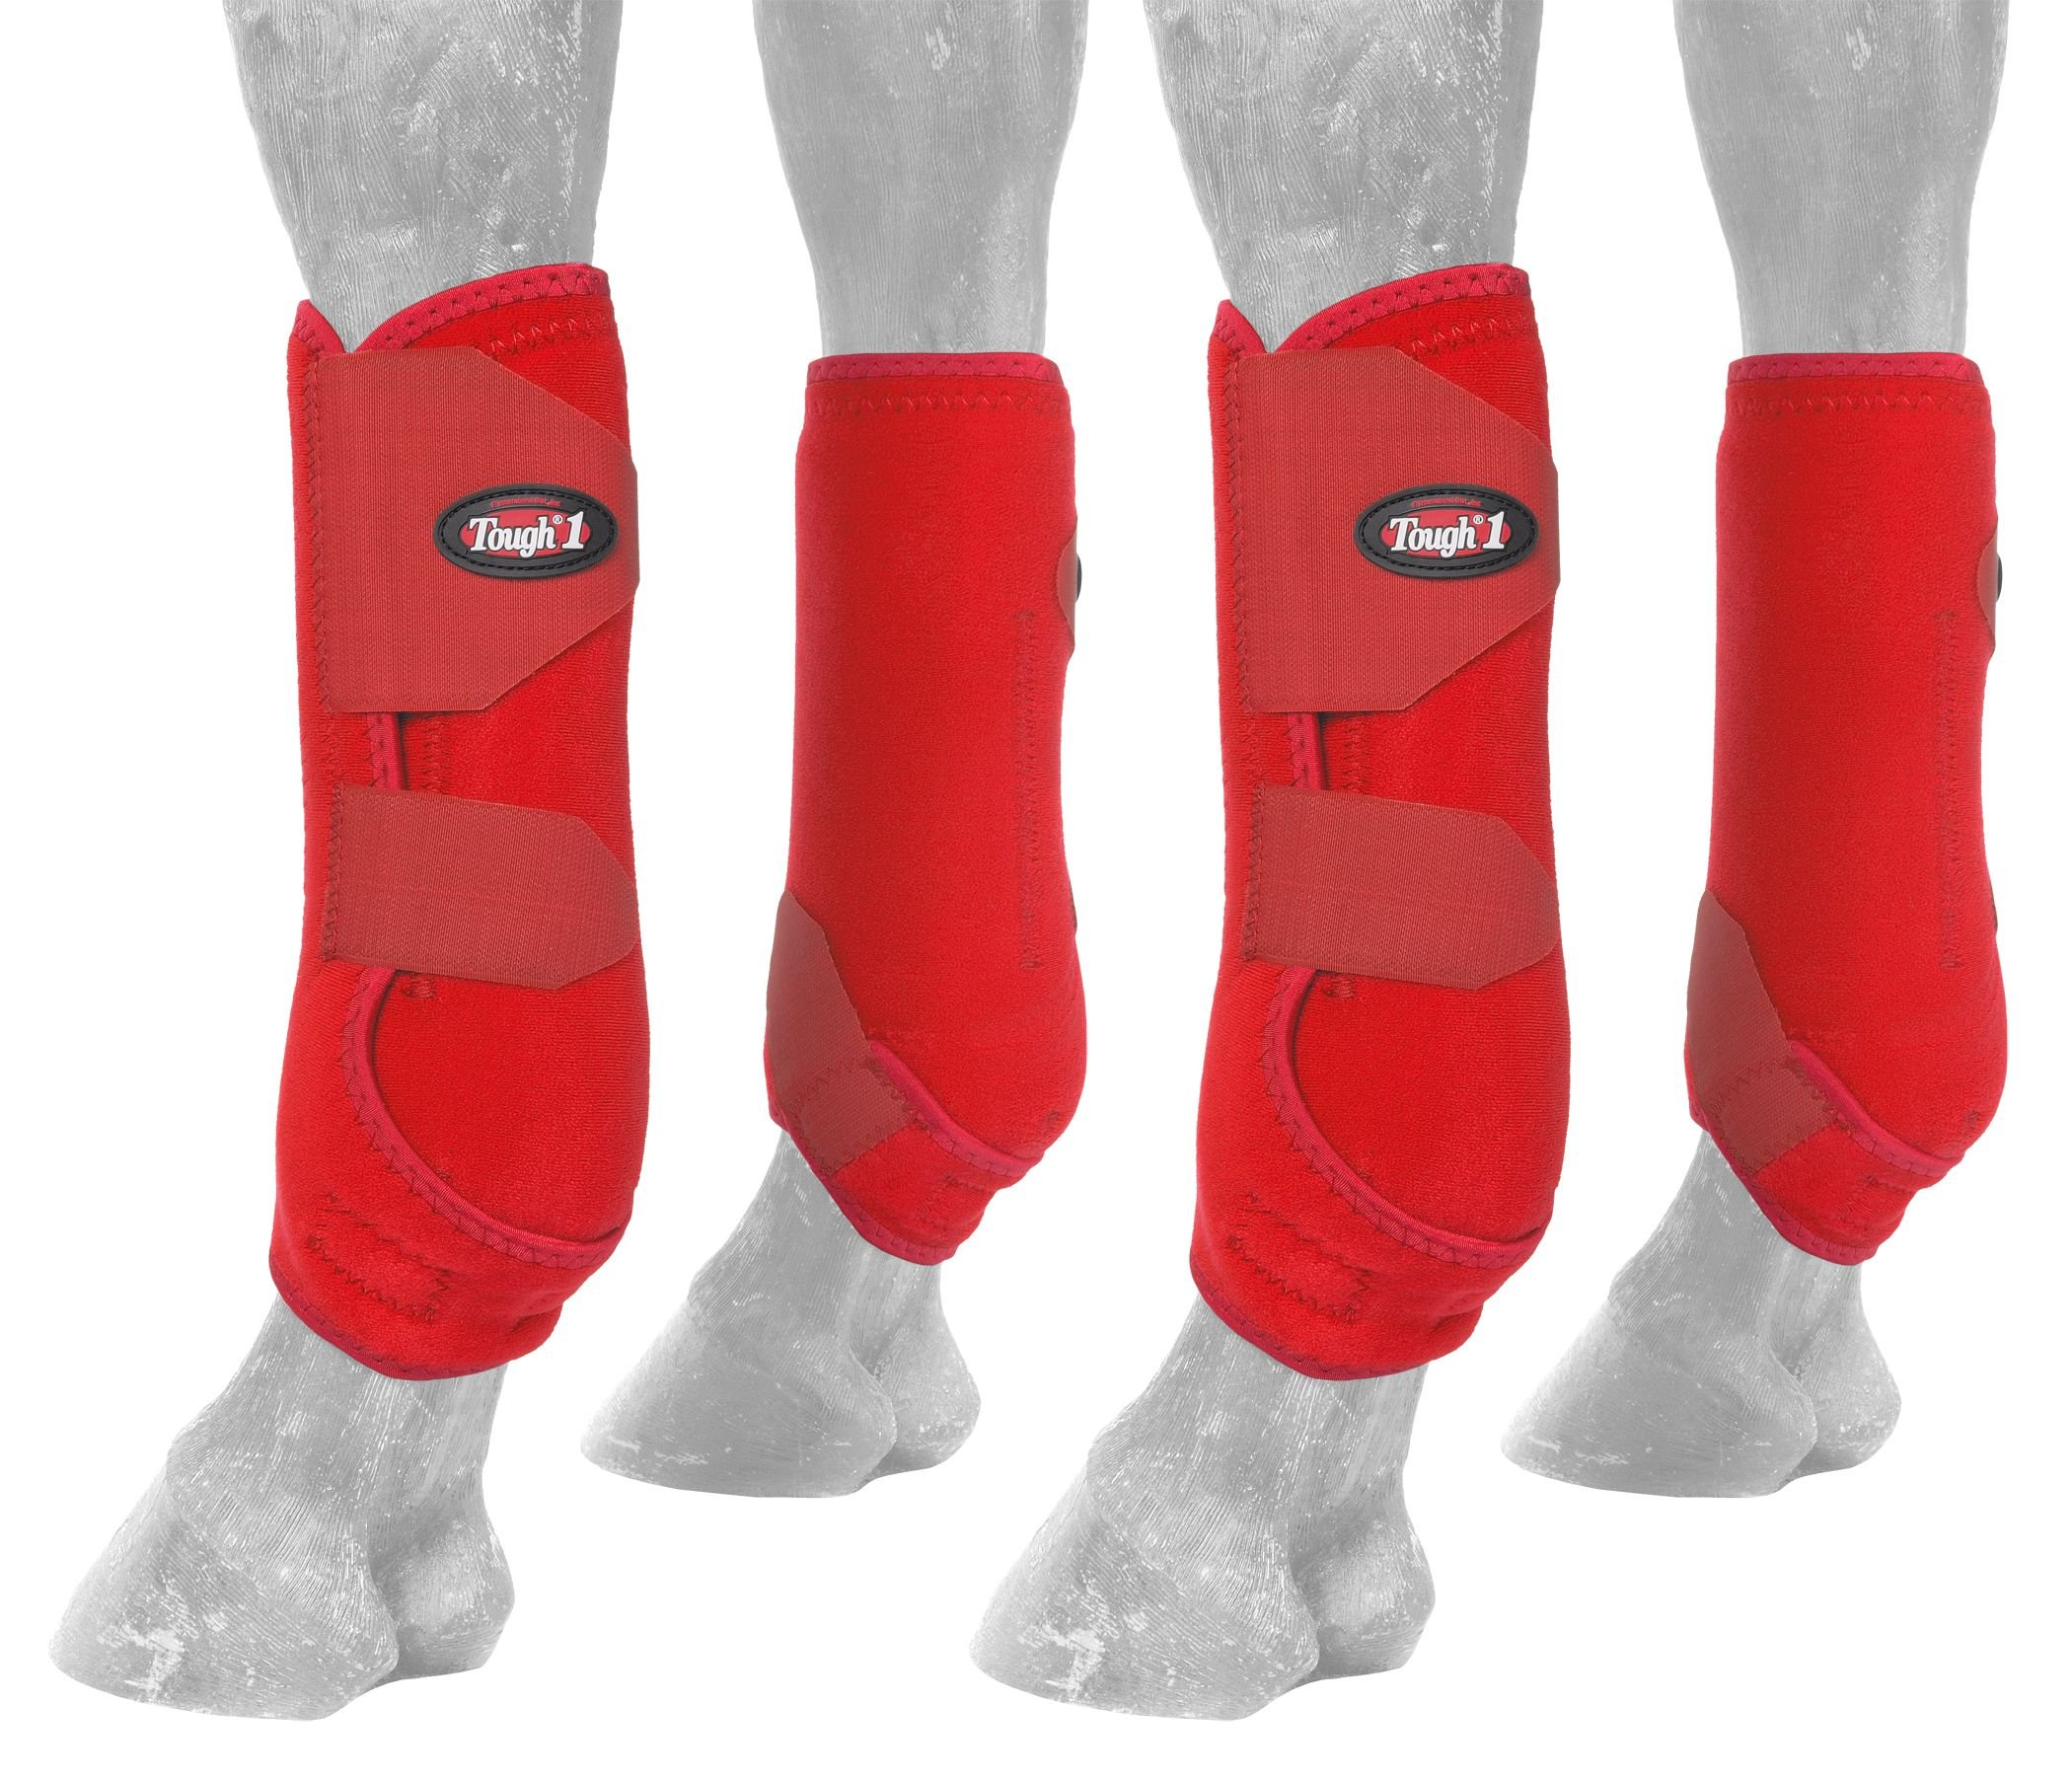 Tough 1 Extreme Vented Sport Boots Set, Red, Large